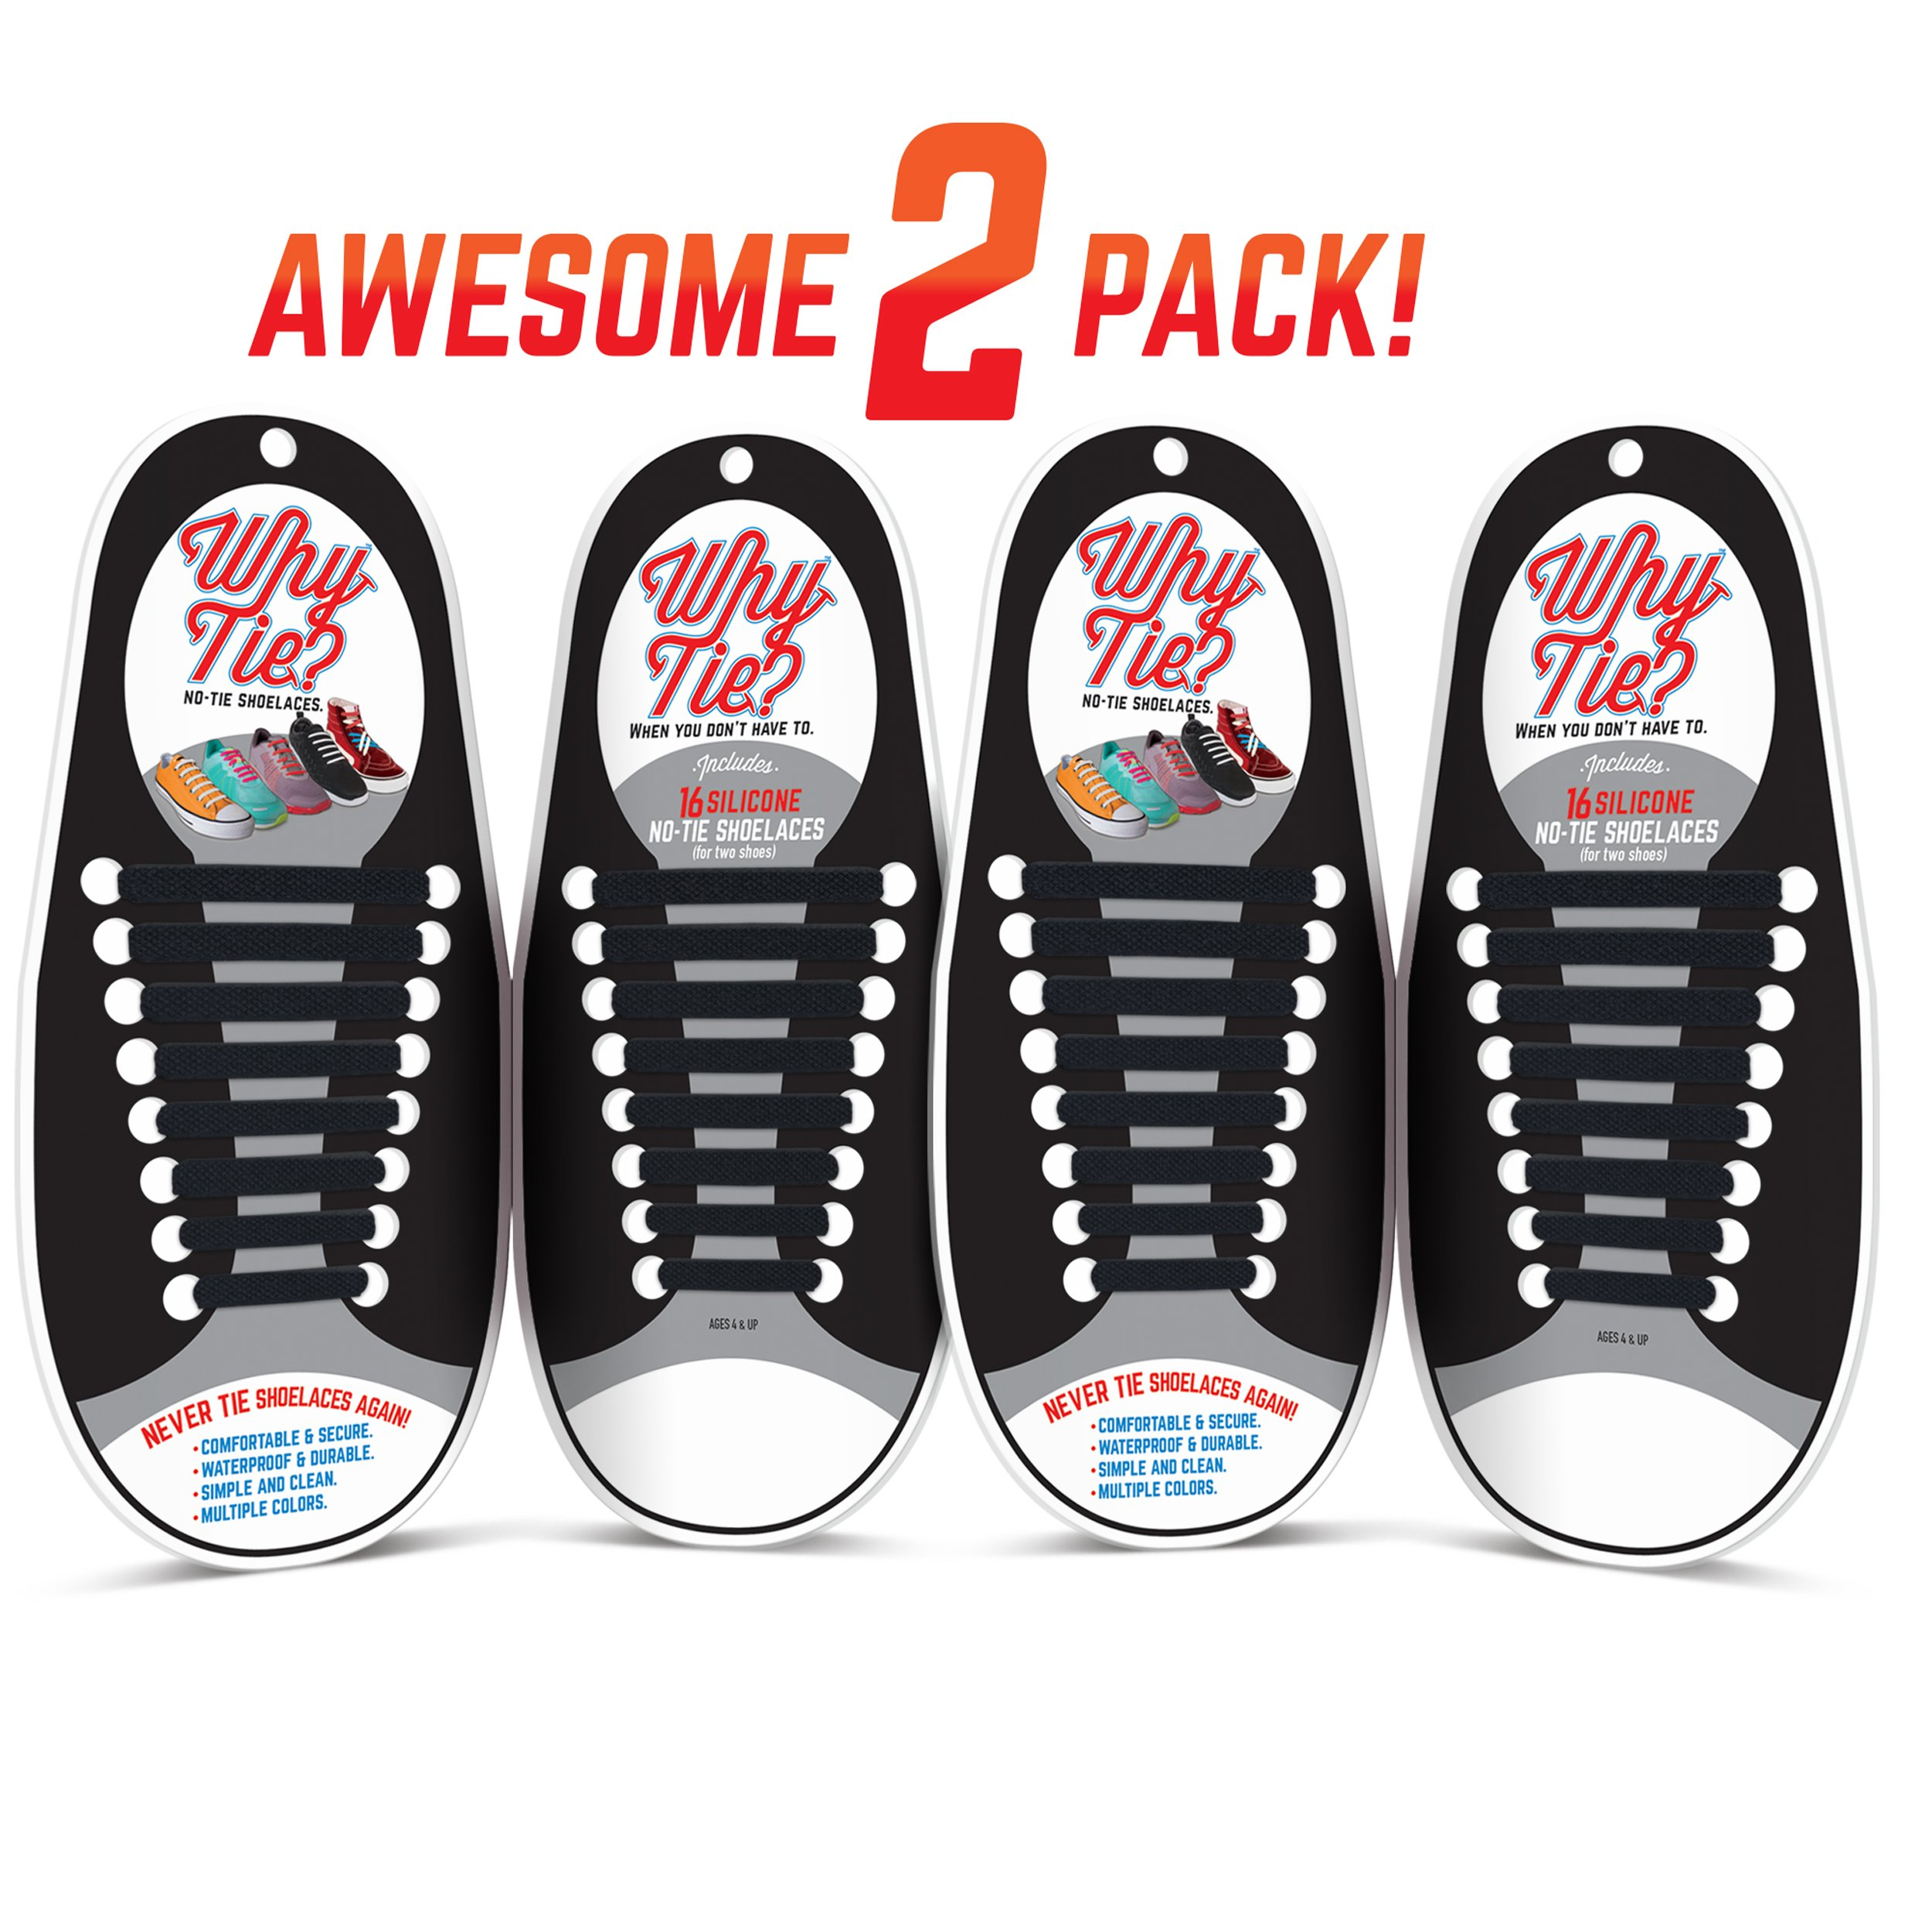 WHY TIE? No-Tie Silicone Shoelaces for Sneakers; Black; 2-Pack